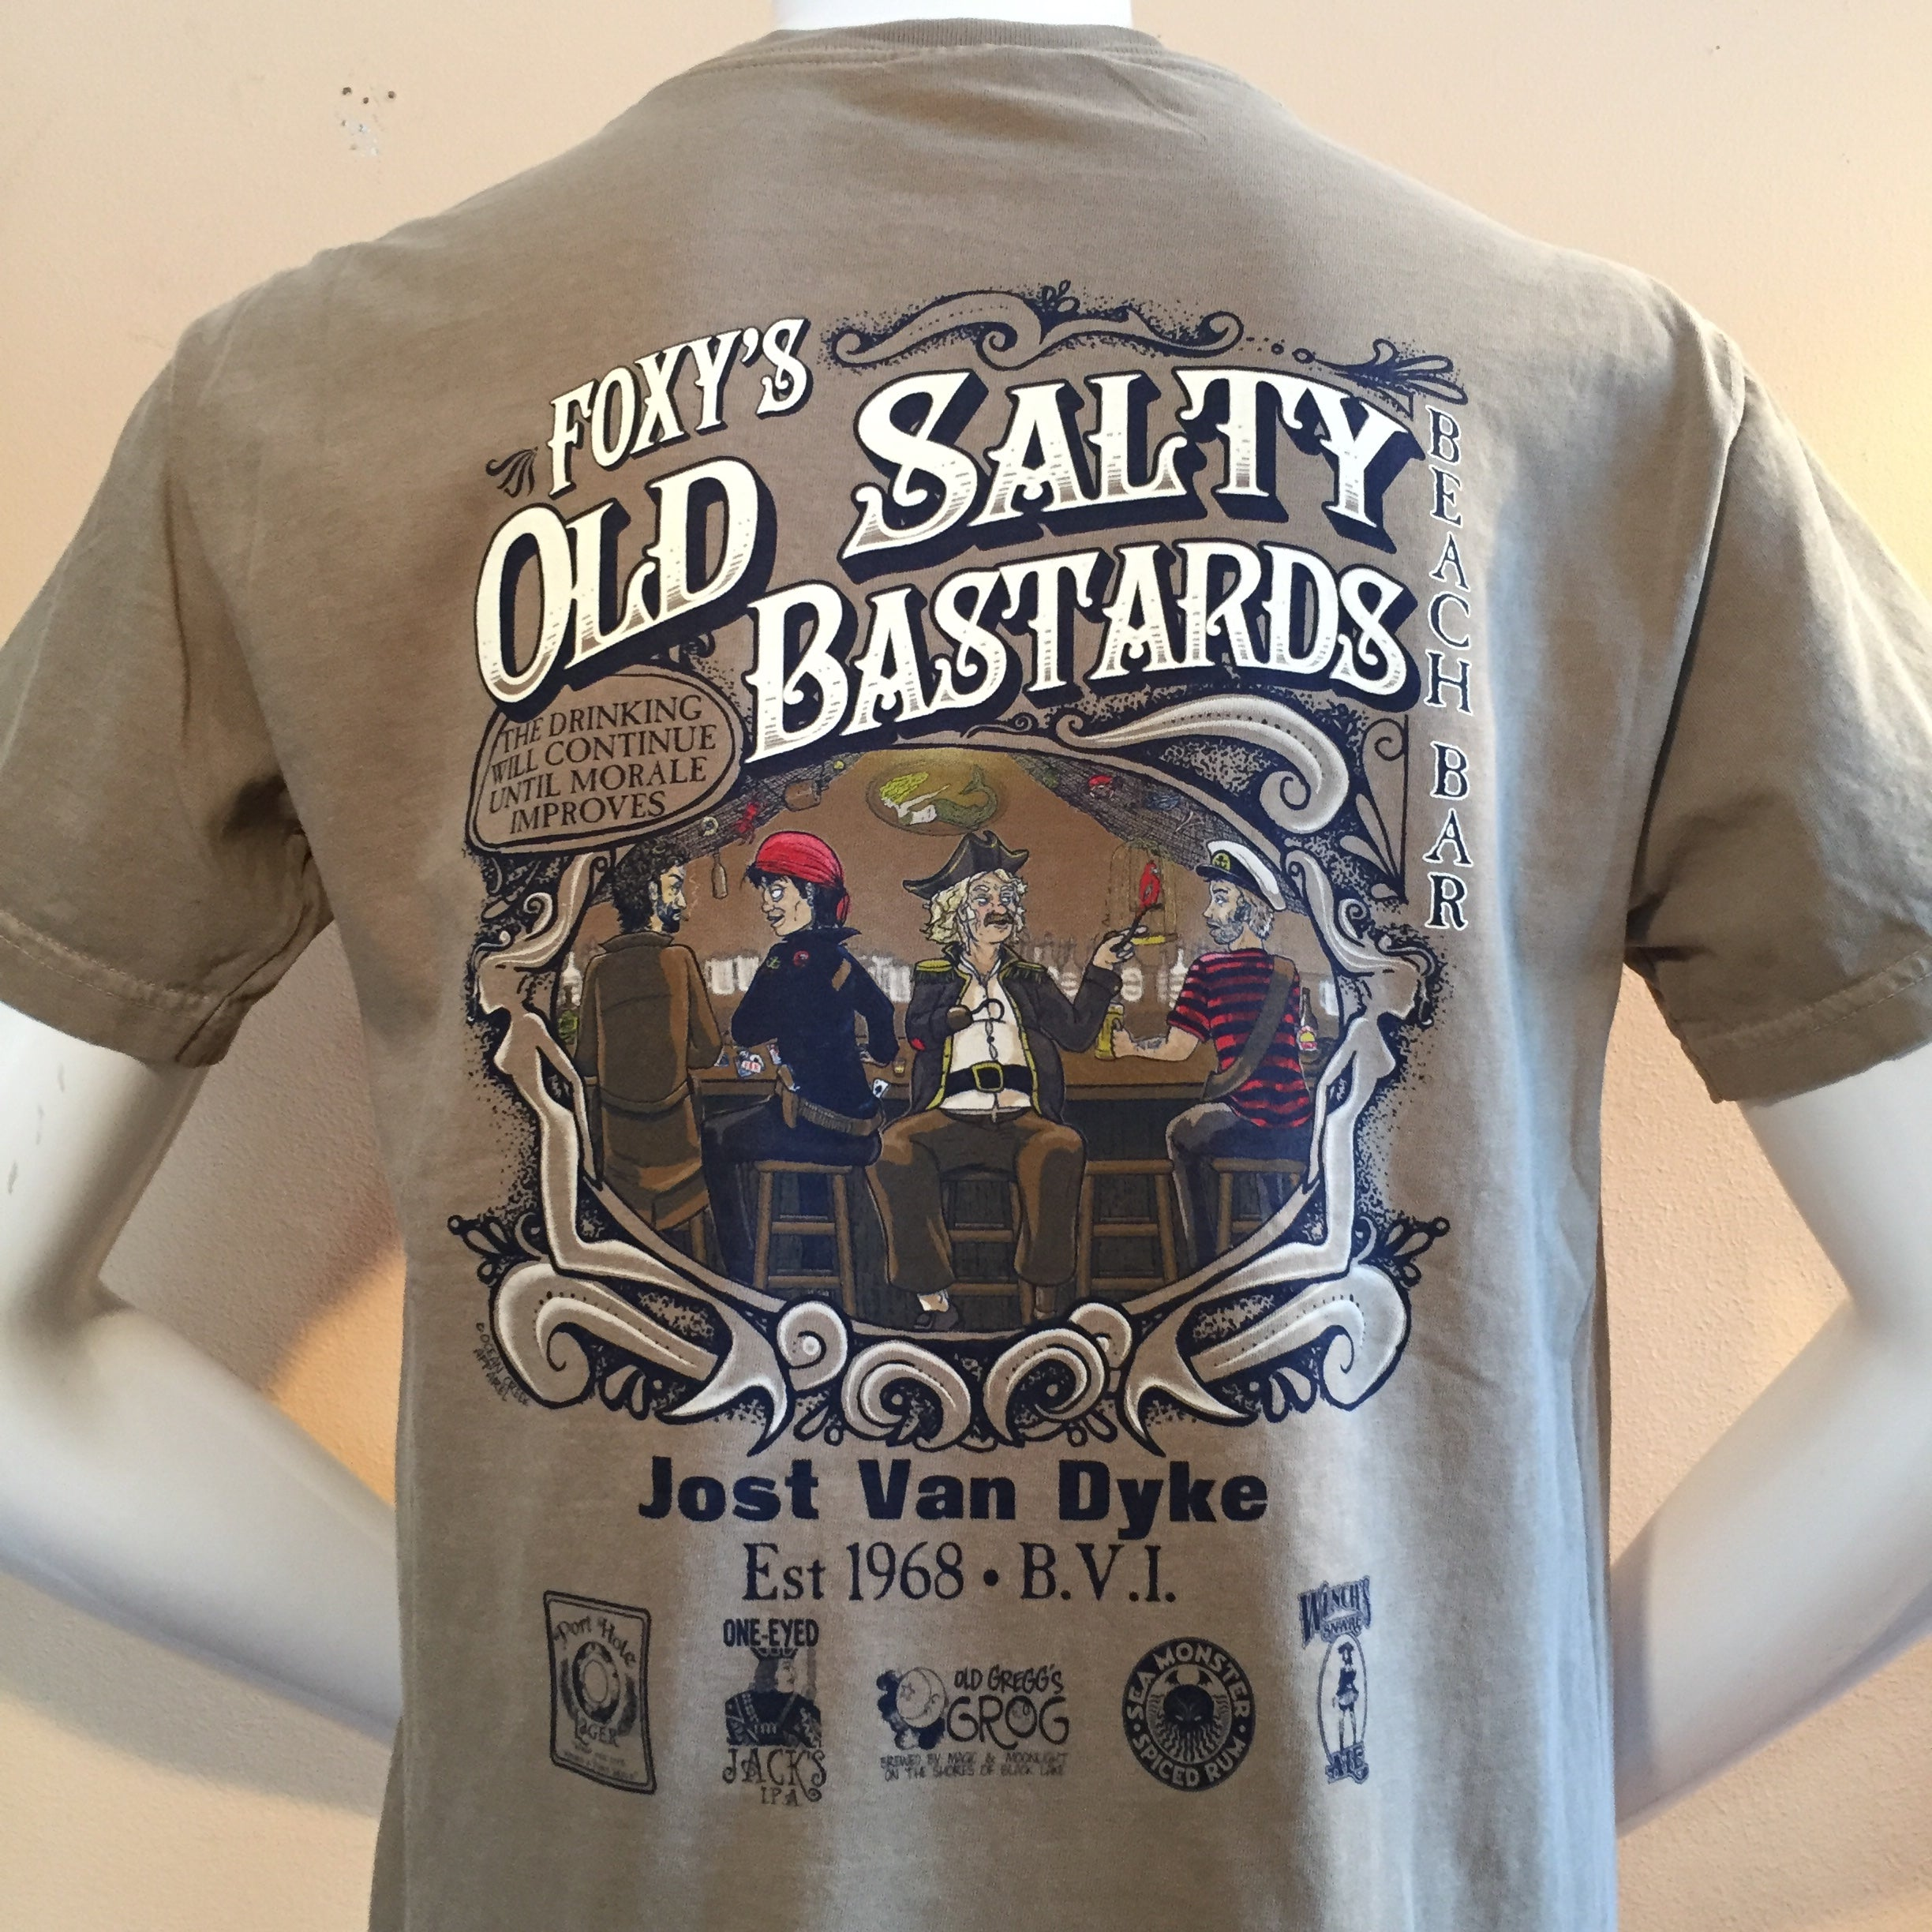 Foxy's 'Old Salty Bs' Short Sleeve Tee